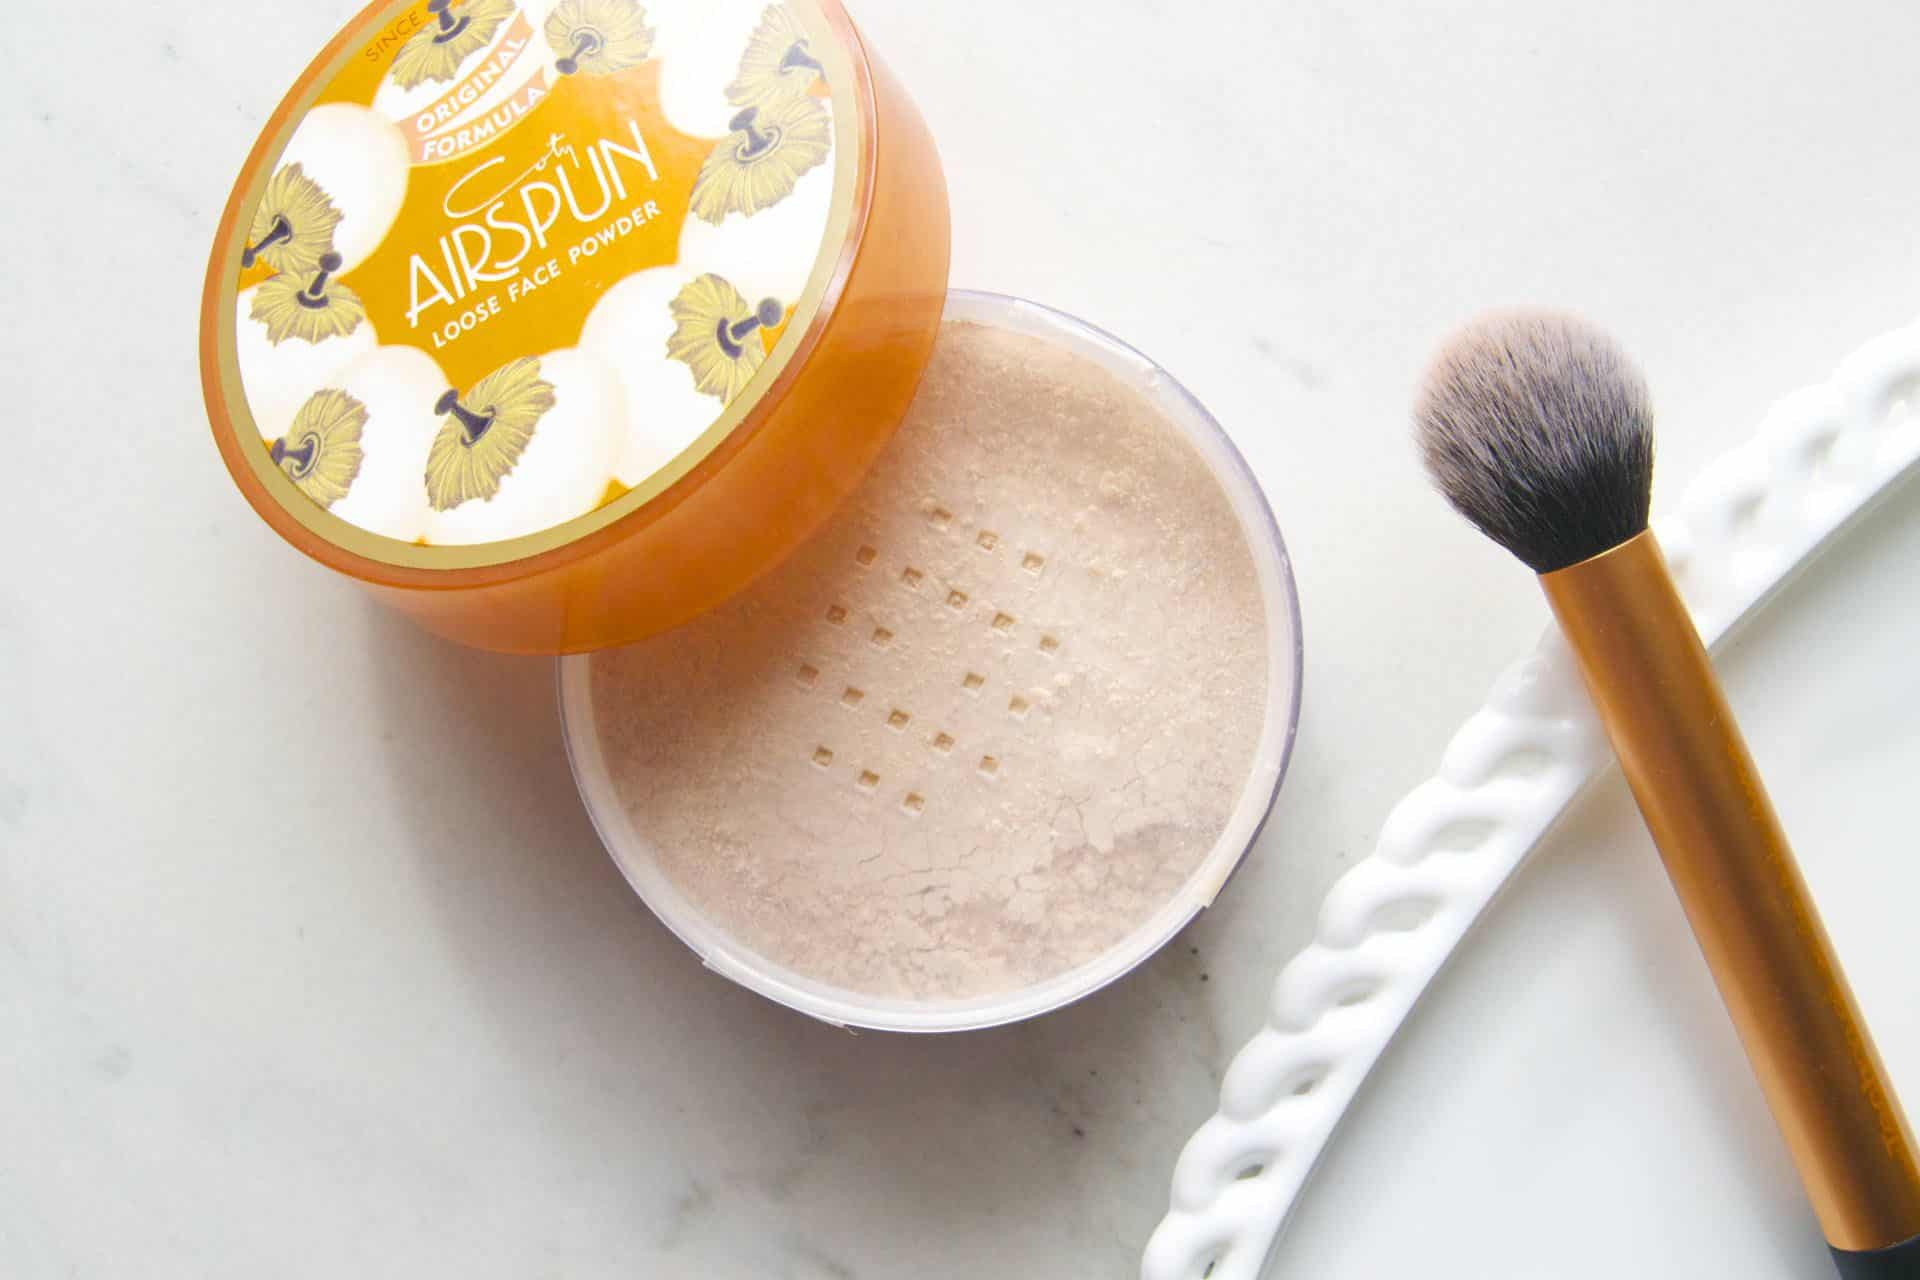 Coty Airspun Loose Powder 2